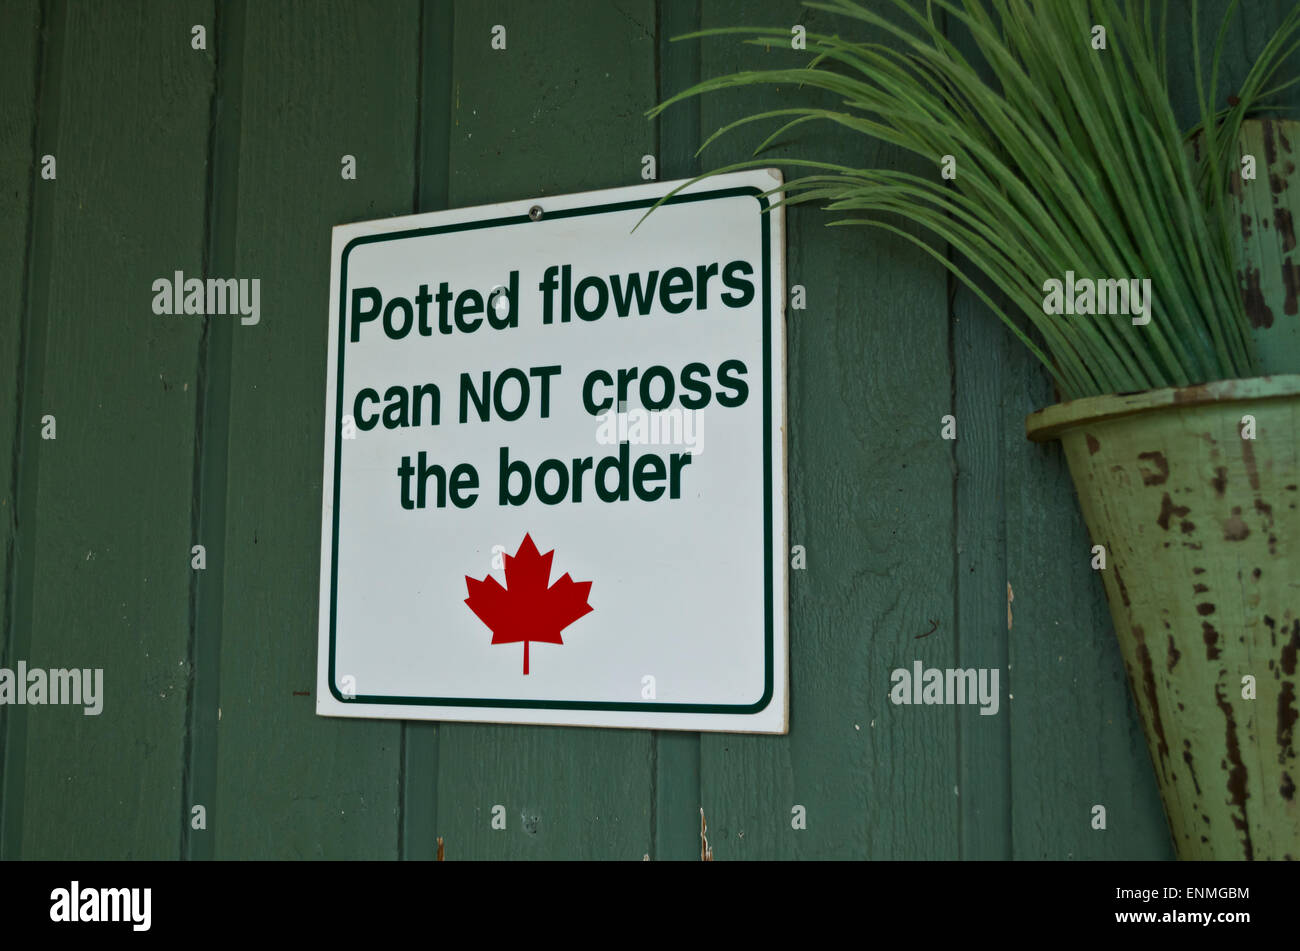 Sign indicating cross-border restrictions forbidding bringing potted plants or flowers from the United States into - Stock Image